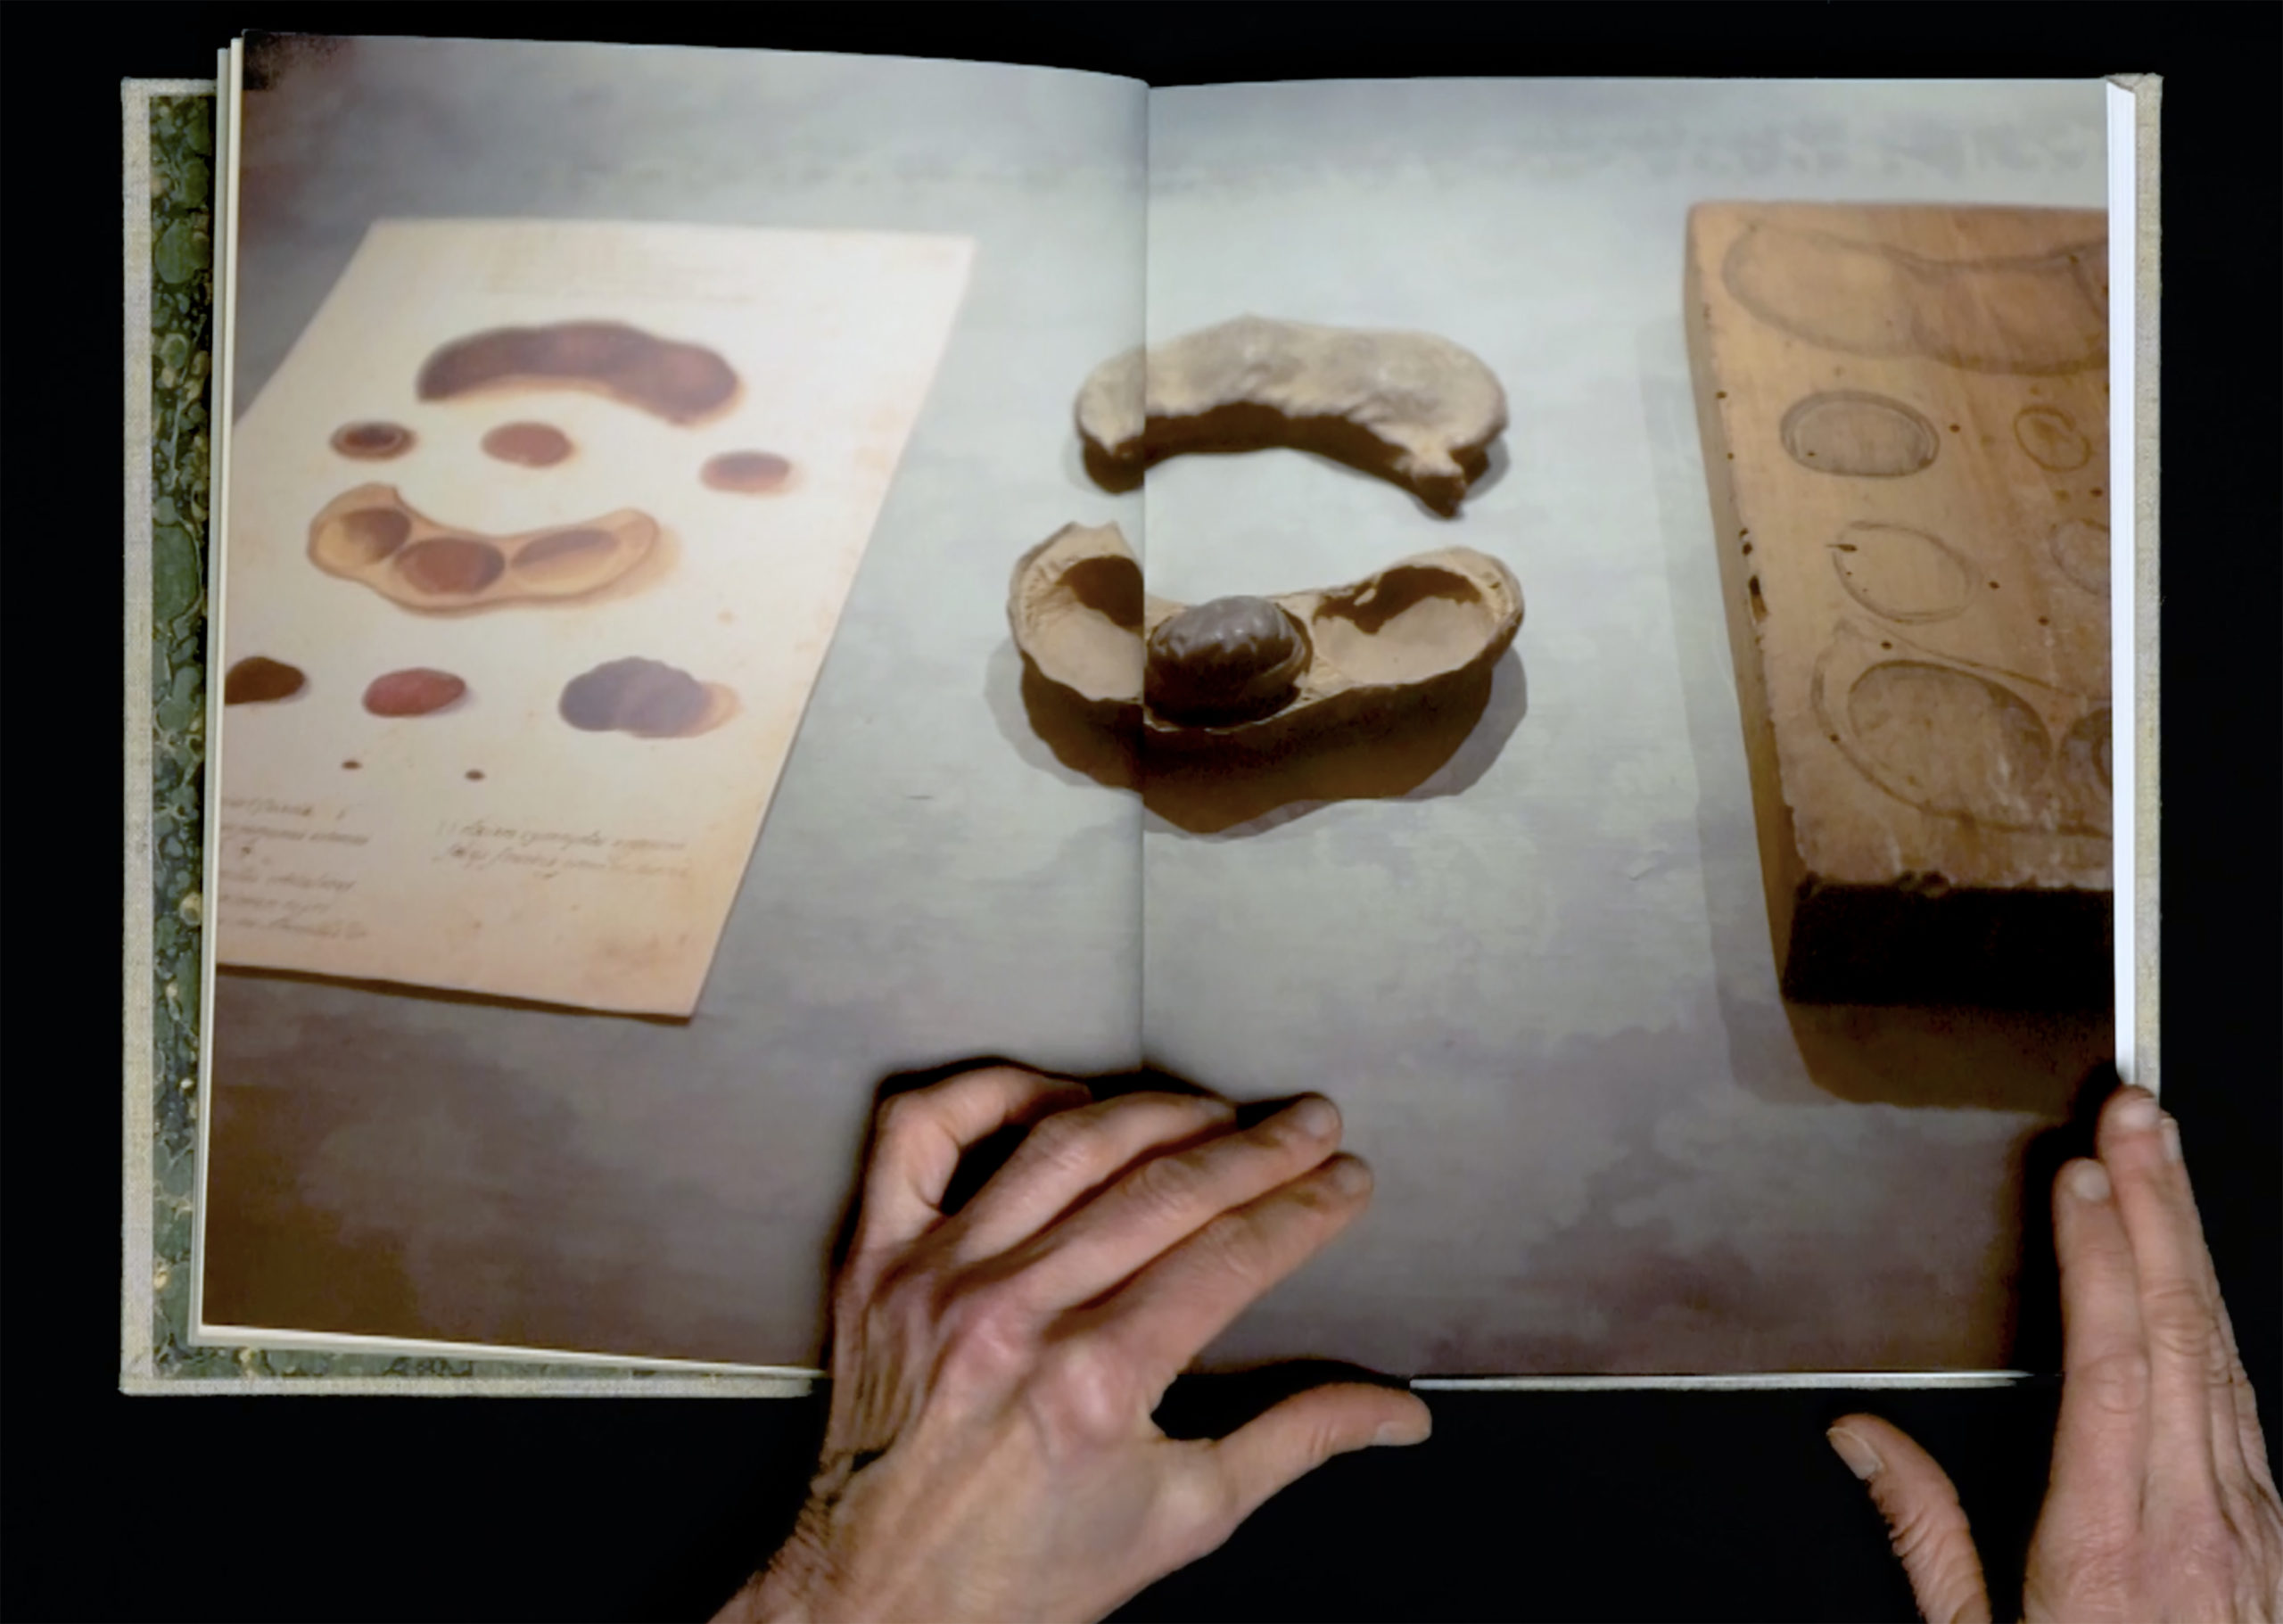 Image of a pair of hands holding a book that shows organic shaped wood carvings